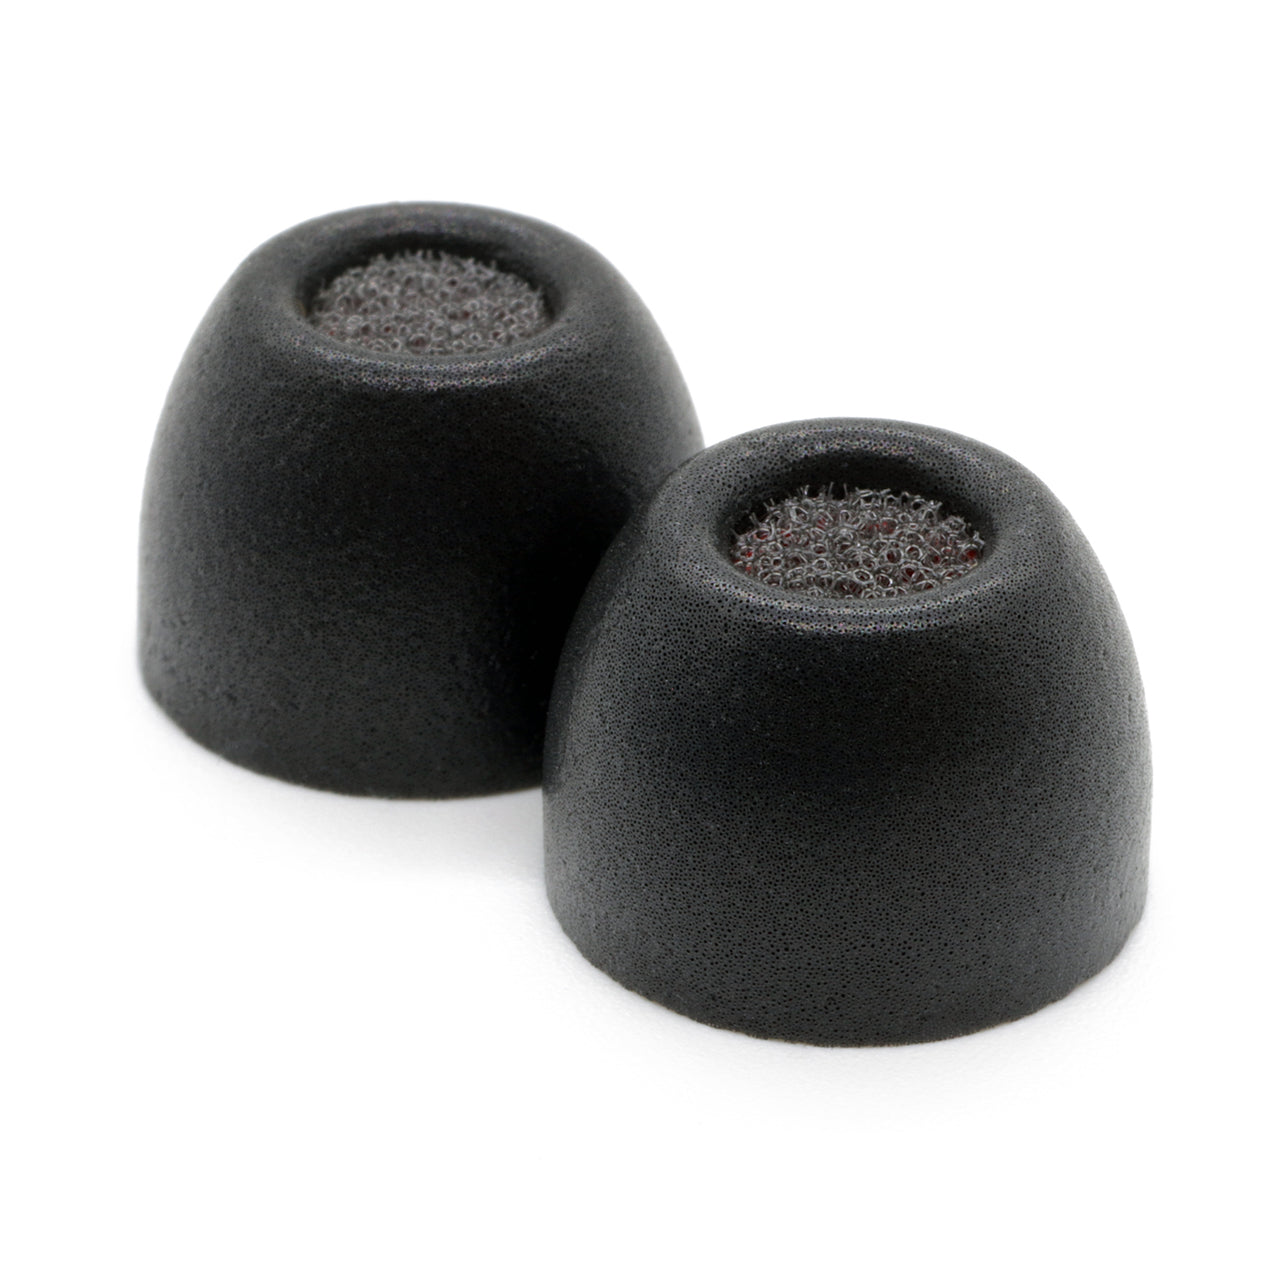 Comply Foam TrueGrip Pro Galaxy Buds True Wireless Kulaklık Ucu (3 Çift)